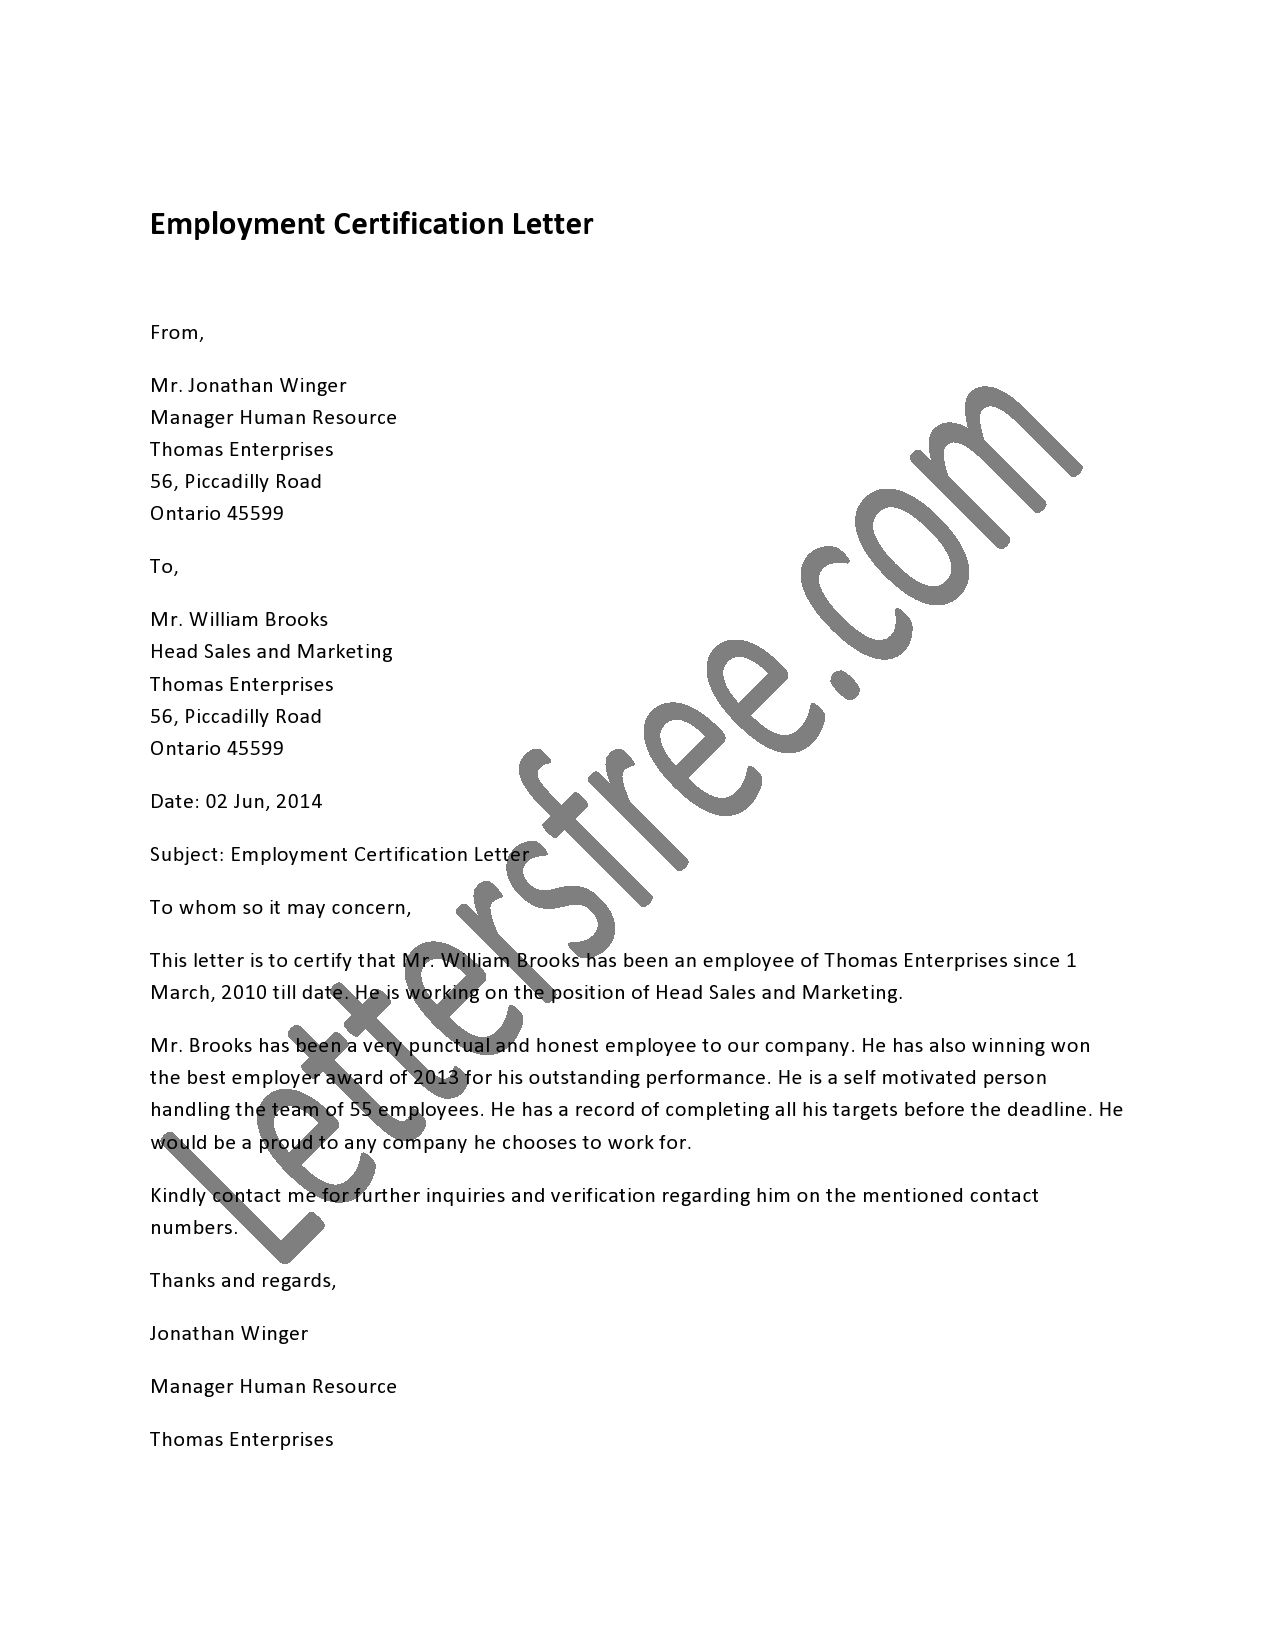 Employment certification letter is written to certify a